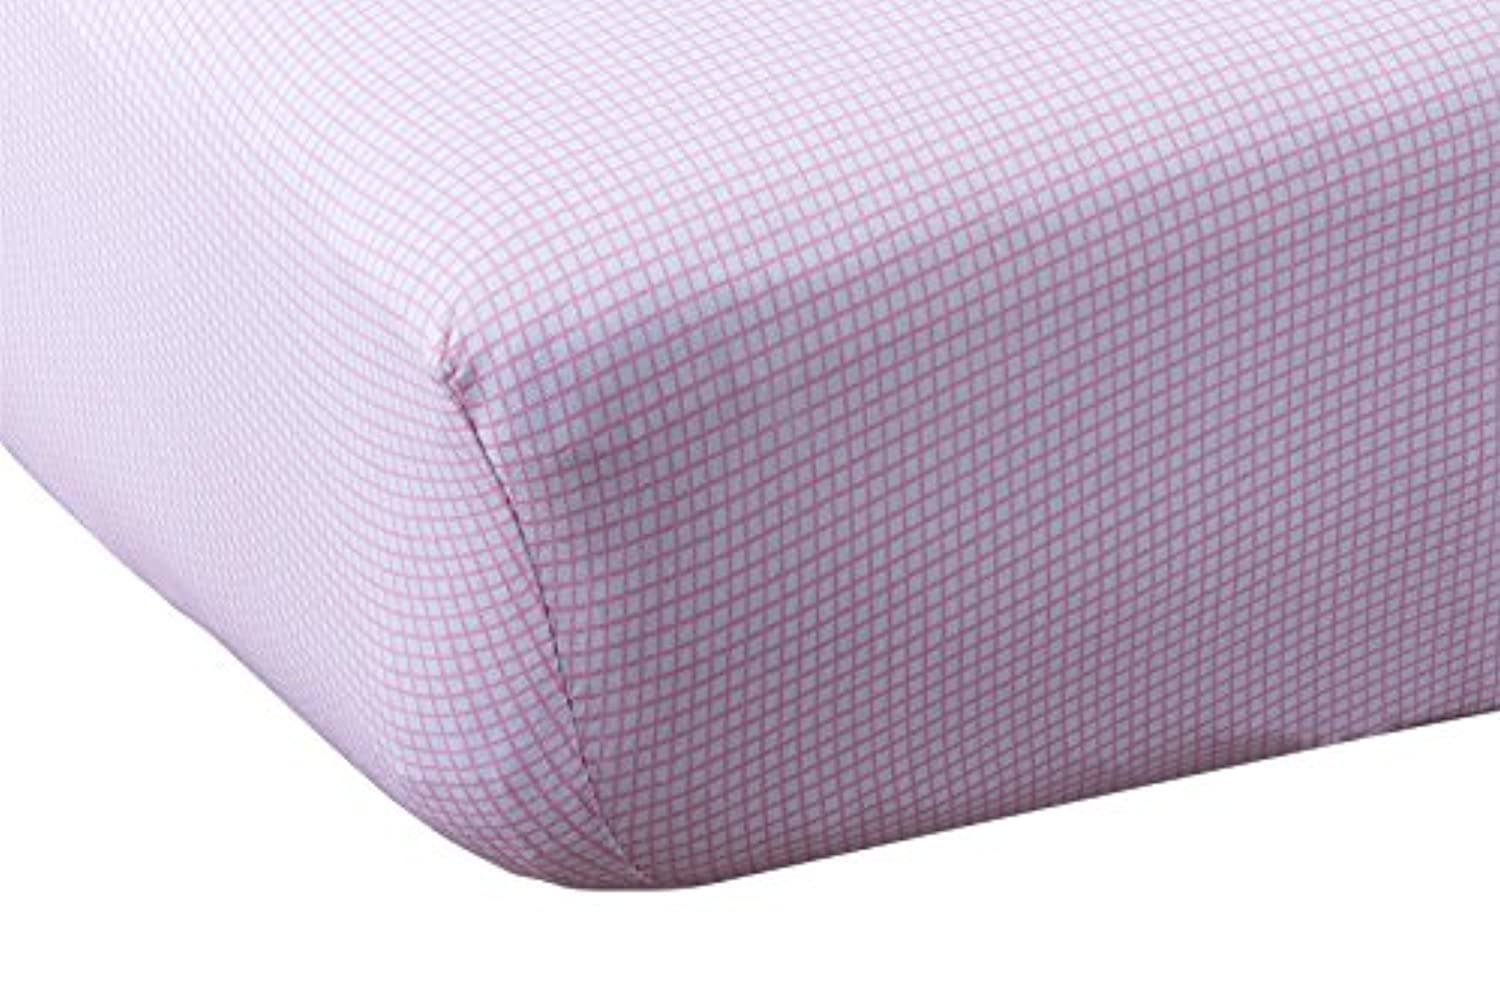 Abstract Baby Fitted Gingham Crib Sheet (28 X 52, Pink) by Abstract